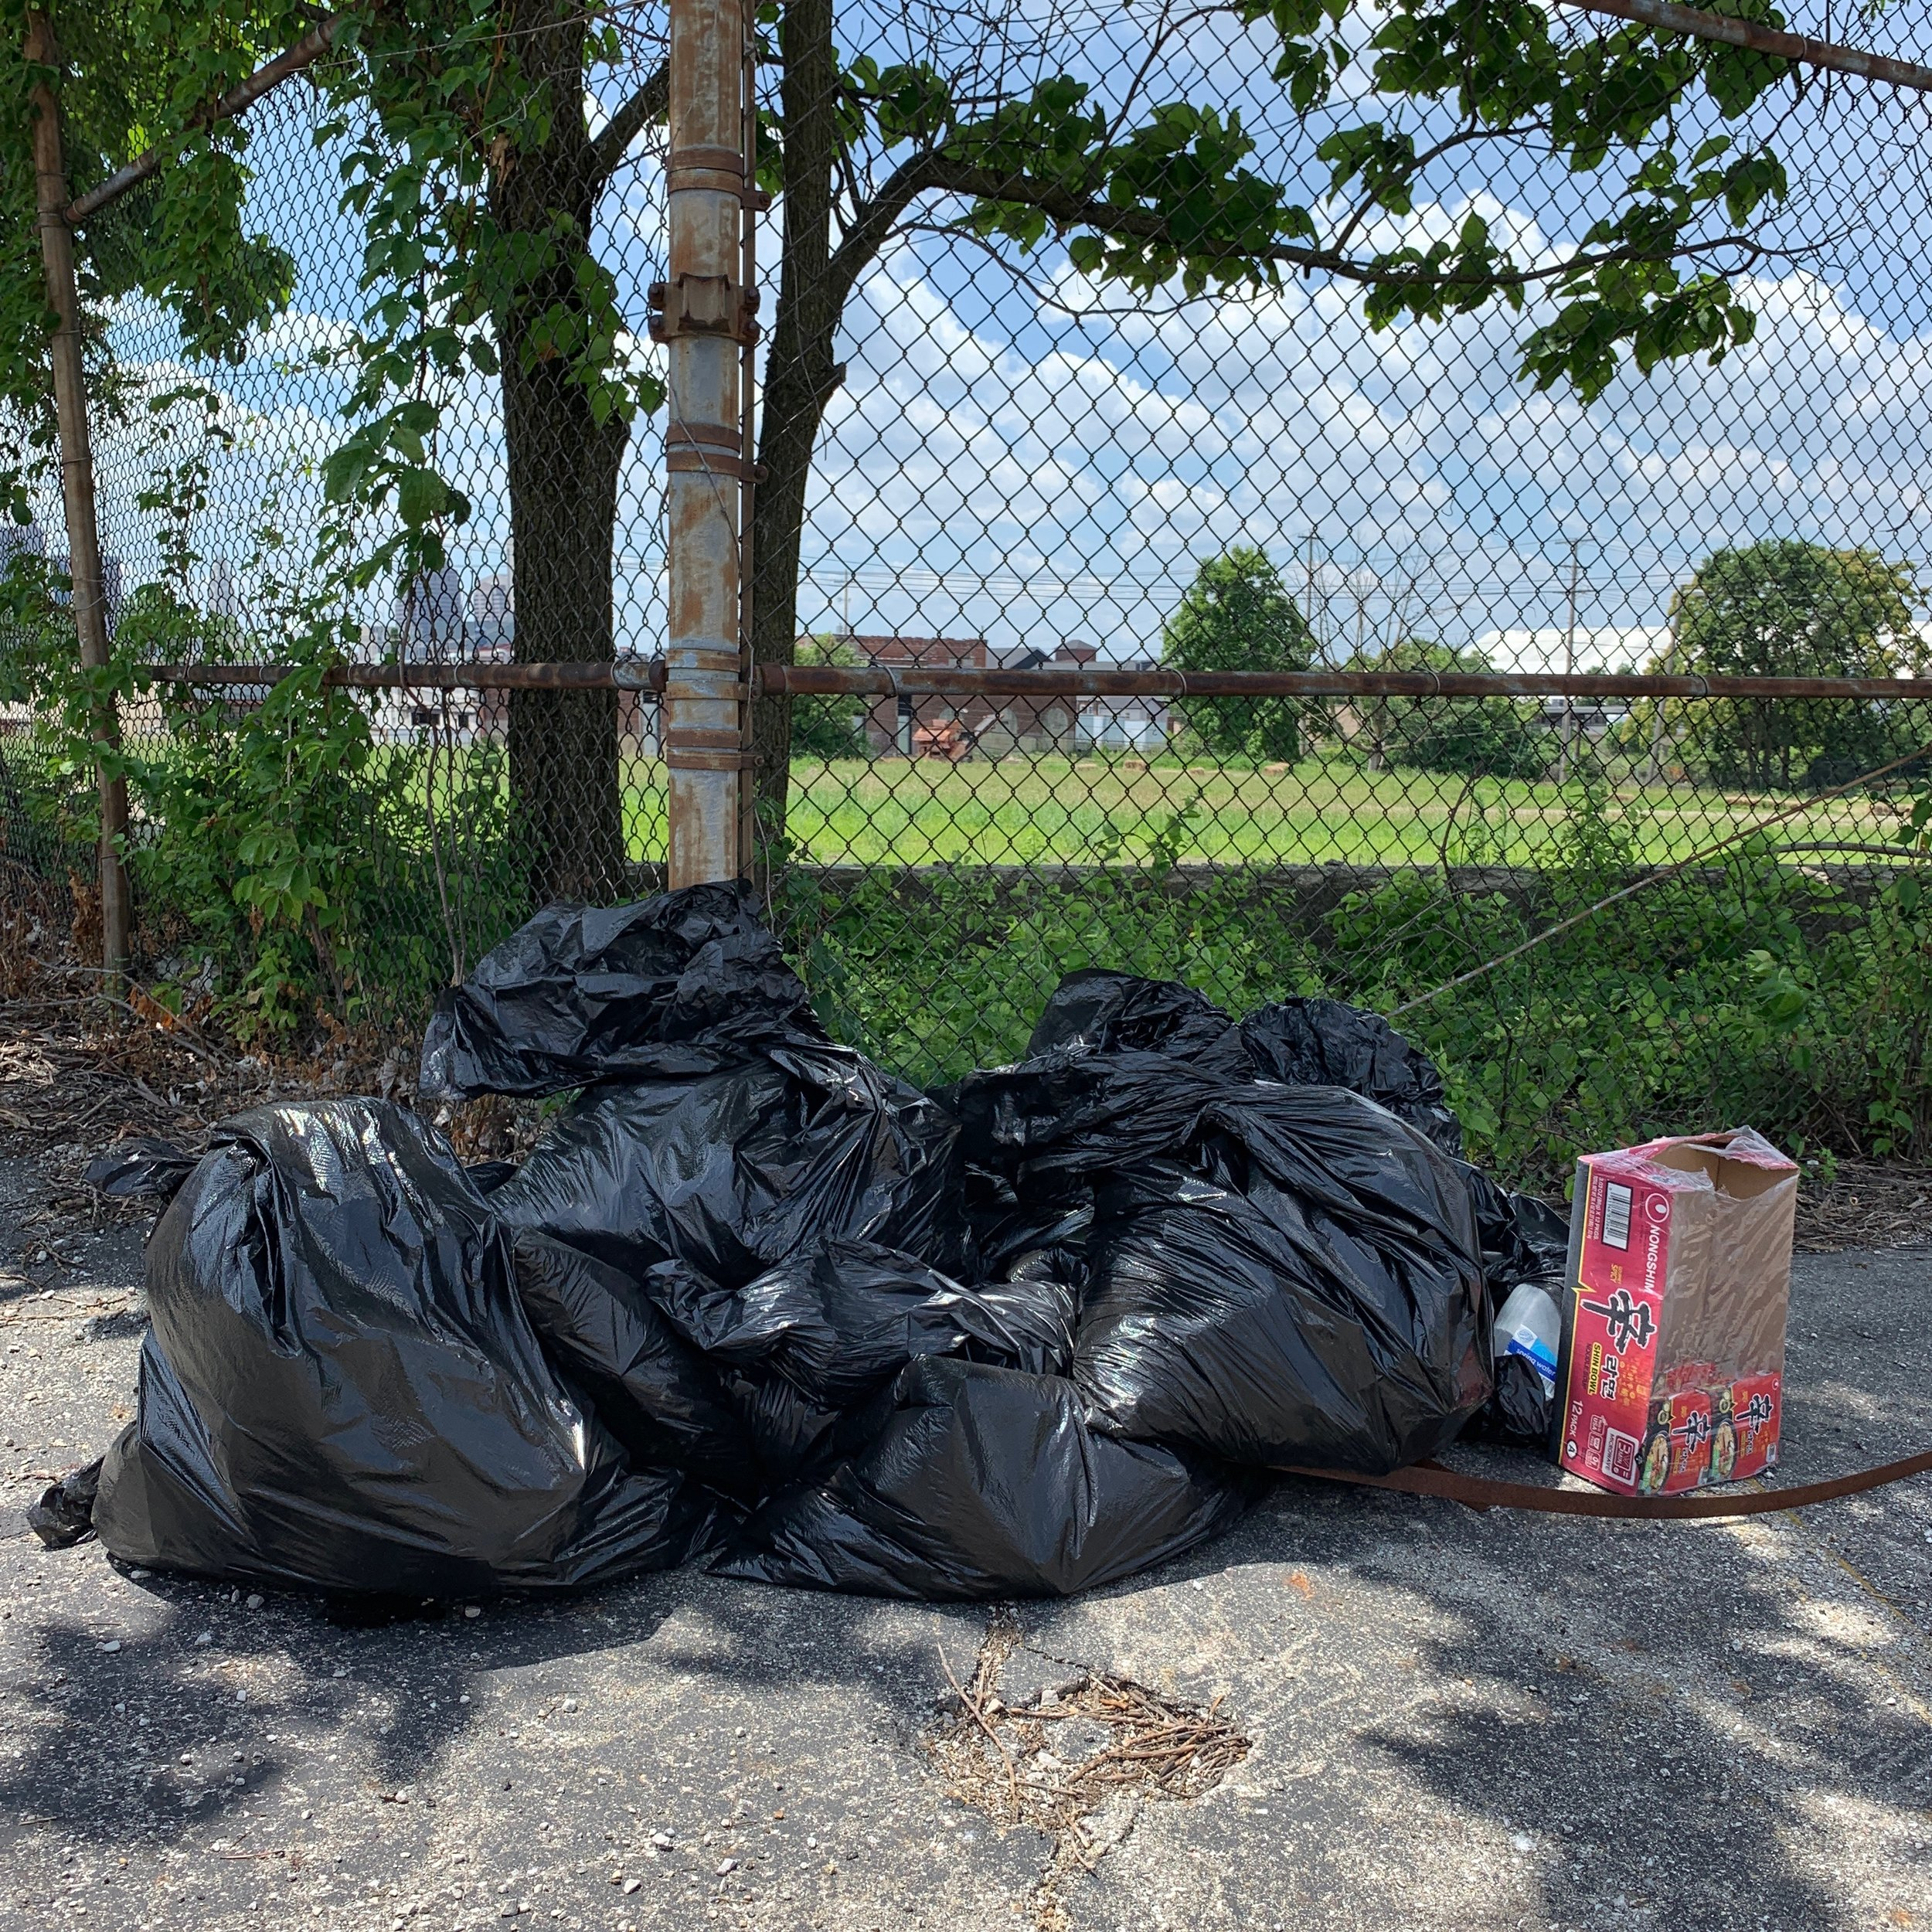 2019-07-02_Litter-CleanUp_00008.jpeg